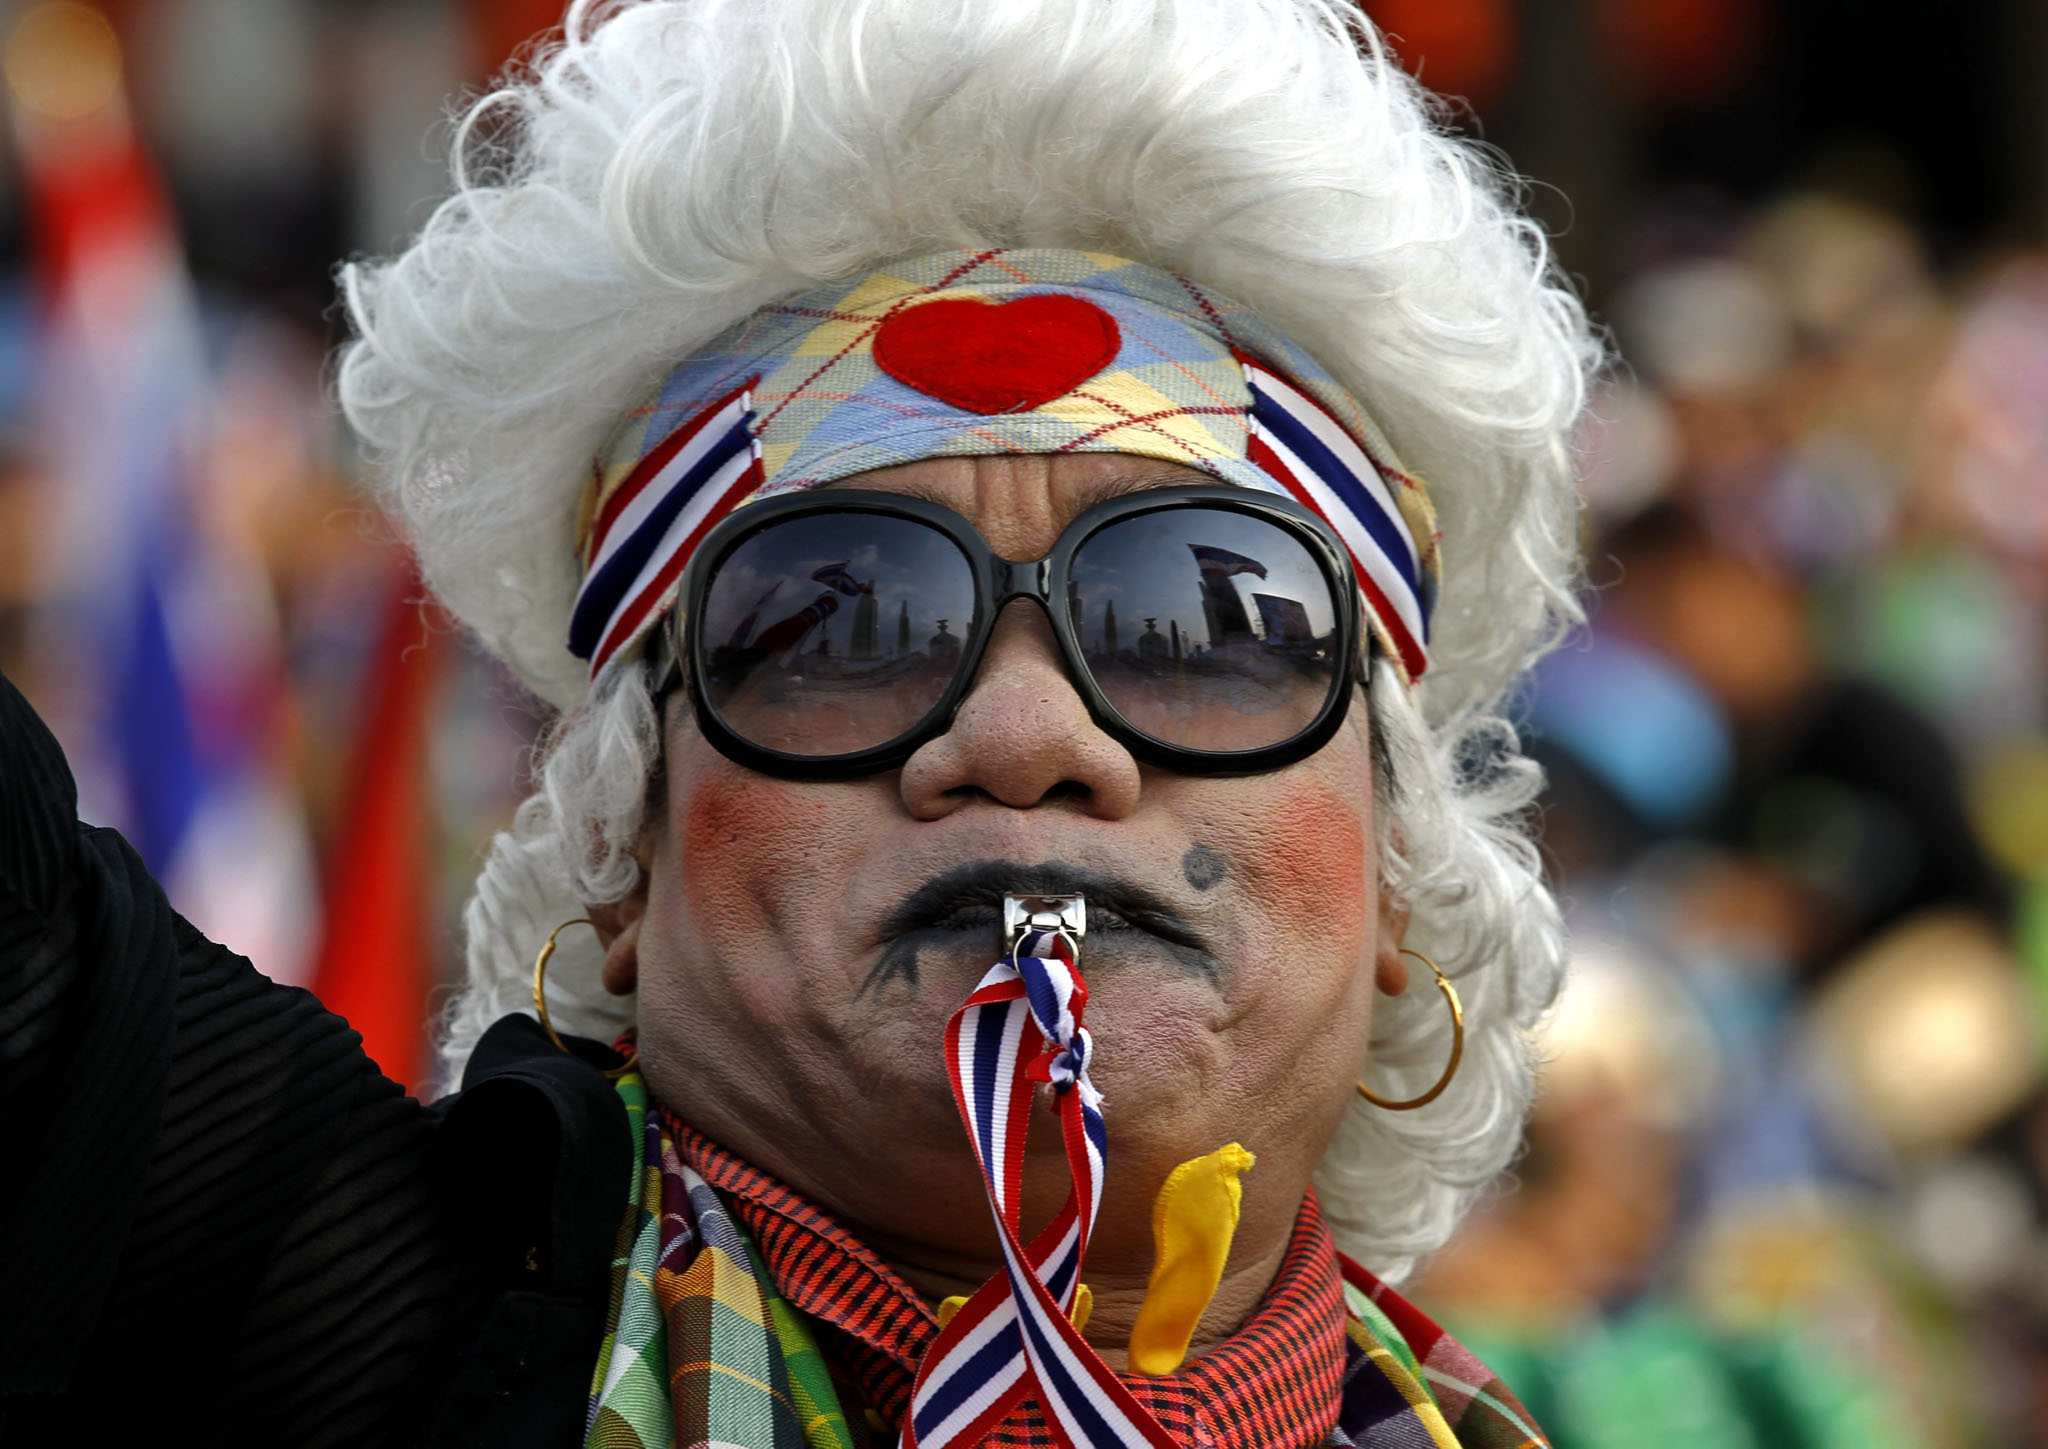 A Thai anti-government protester blows a whistle as she participates in a protest at the Democracy Monument in Bangkok, Thailand. Thai Prime Minister, Yingluck Shinawatra, called for an end to protests against a bill that would provide amnesty for political crimes after the lower house of parliament cancelled further legislation on the issue.